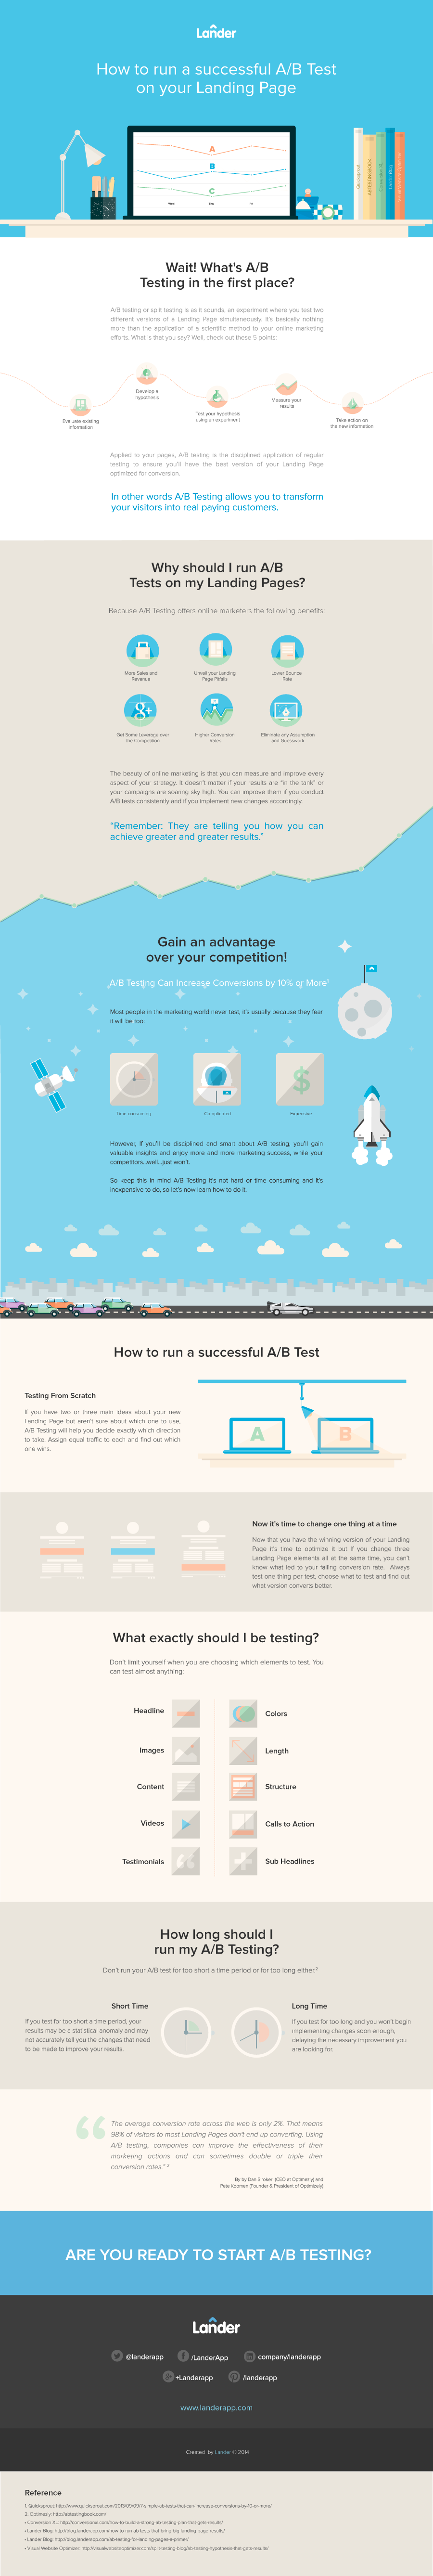 landers ab testing infographic 900